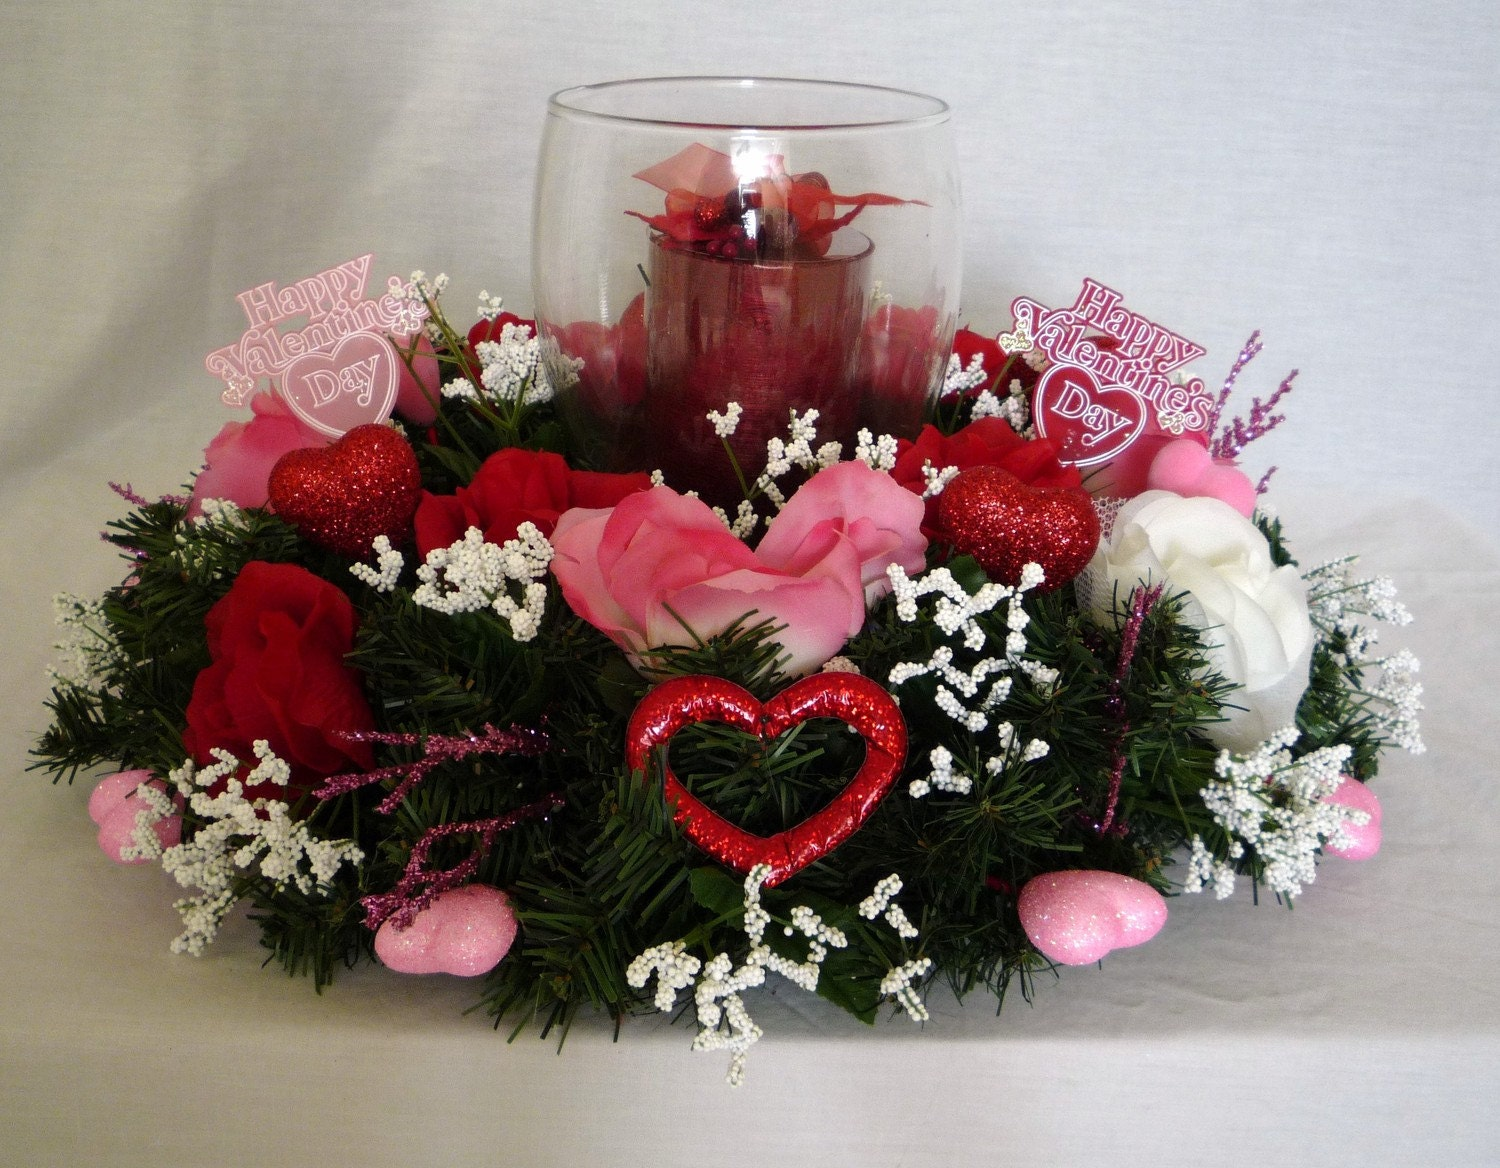 Valentines Day Decor Table Centerpiece Candle Centerpiece